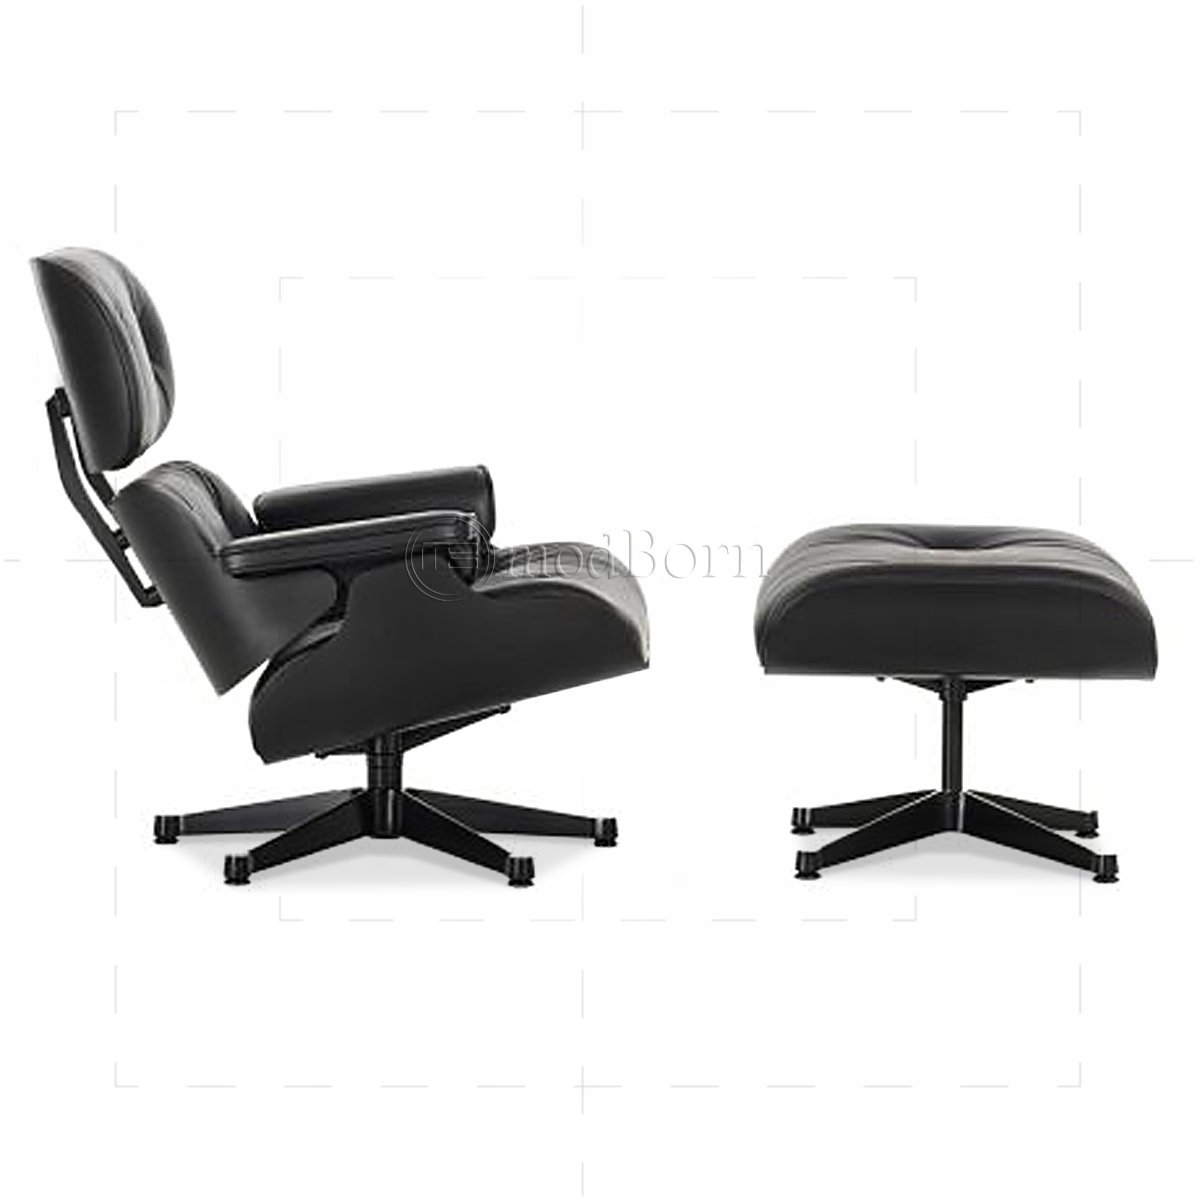 replica eames lounge chair and ottoman black. eames style lounge chair and ottoman black leather wood - replica r